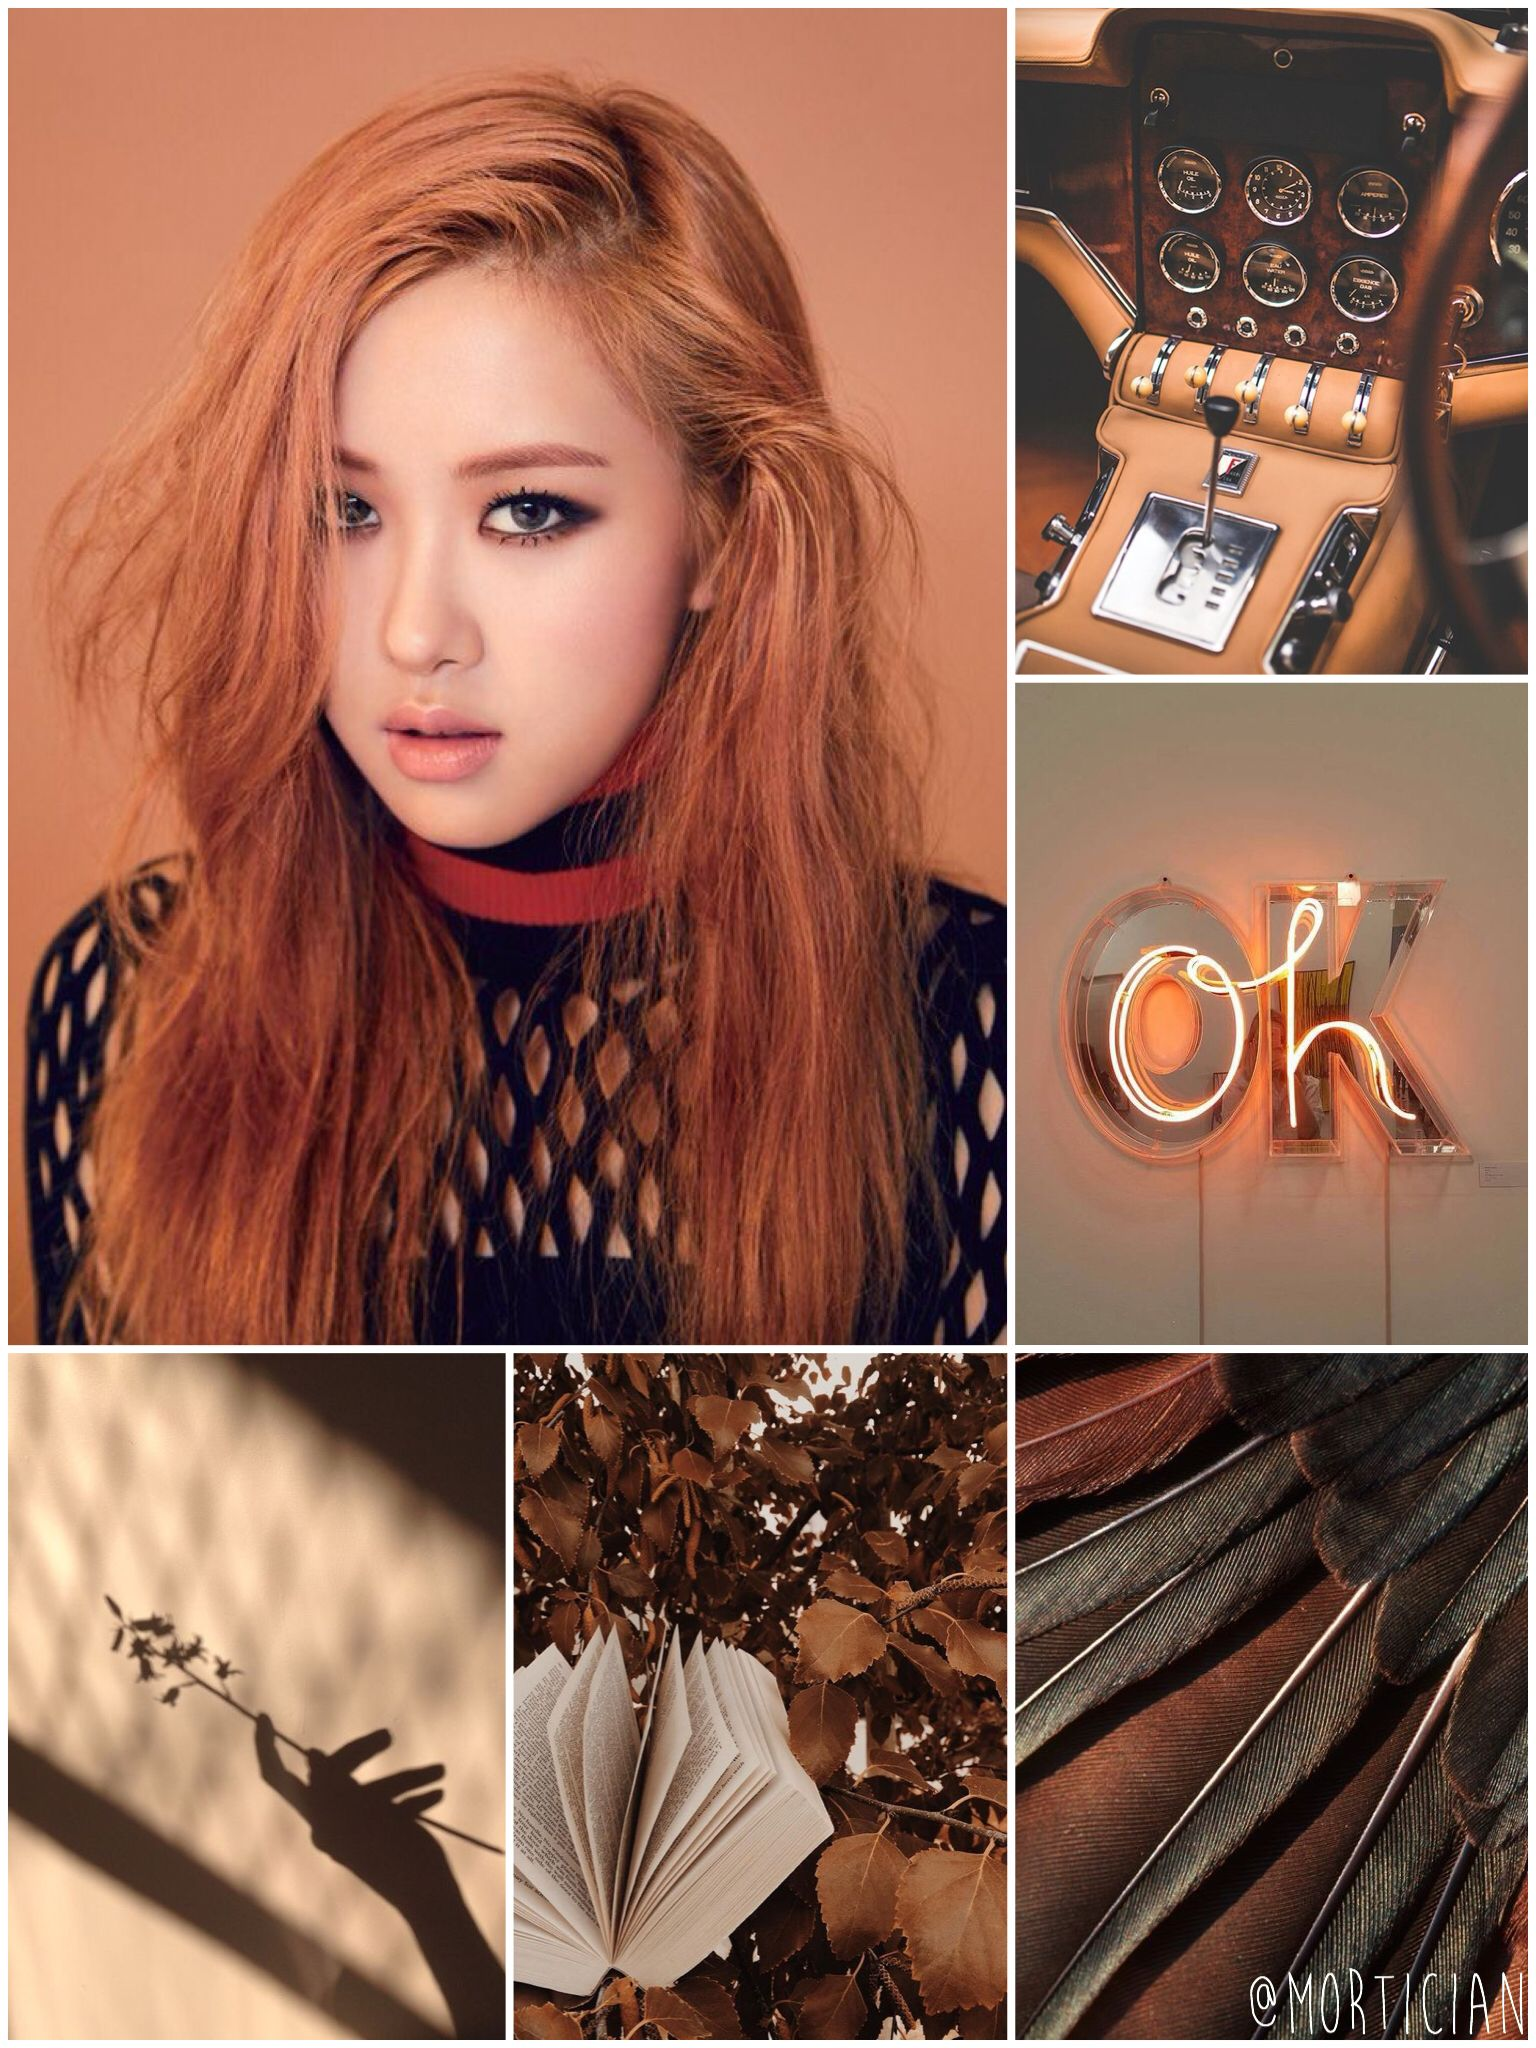 Pin By Andie Solis On Chroma Things Aesthetic Vintage Brown Aesthetic Light Orange